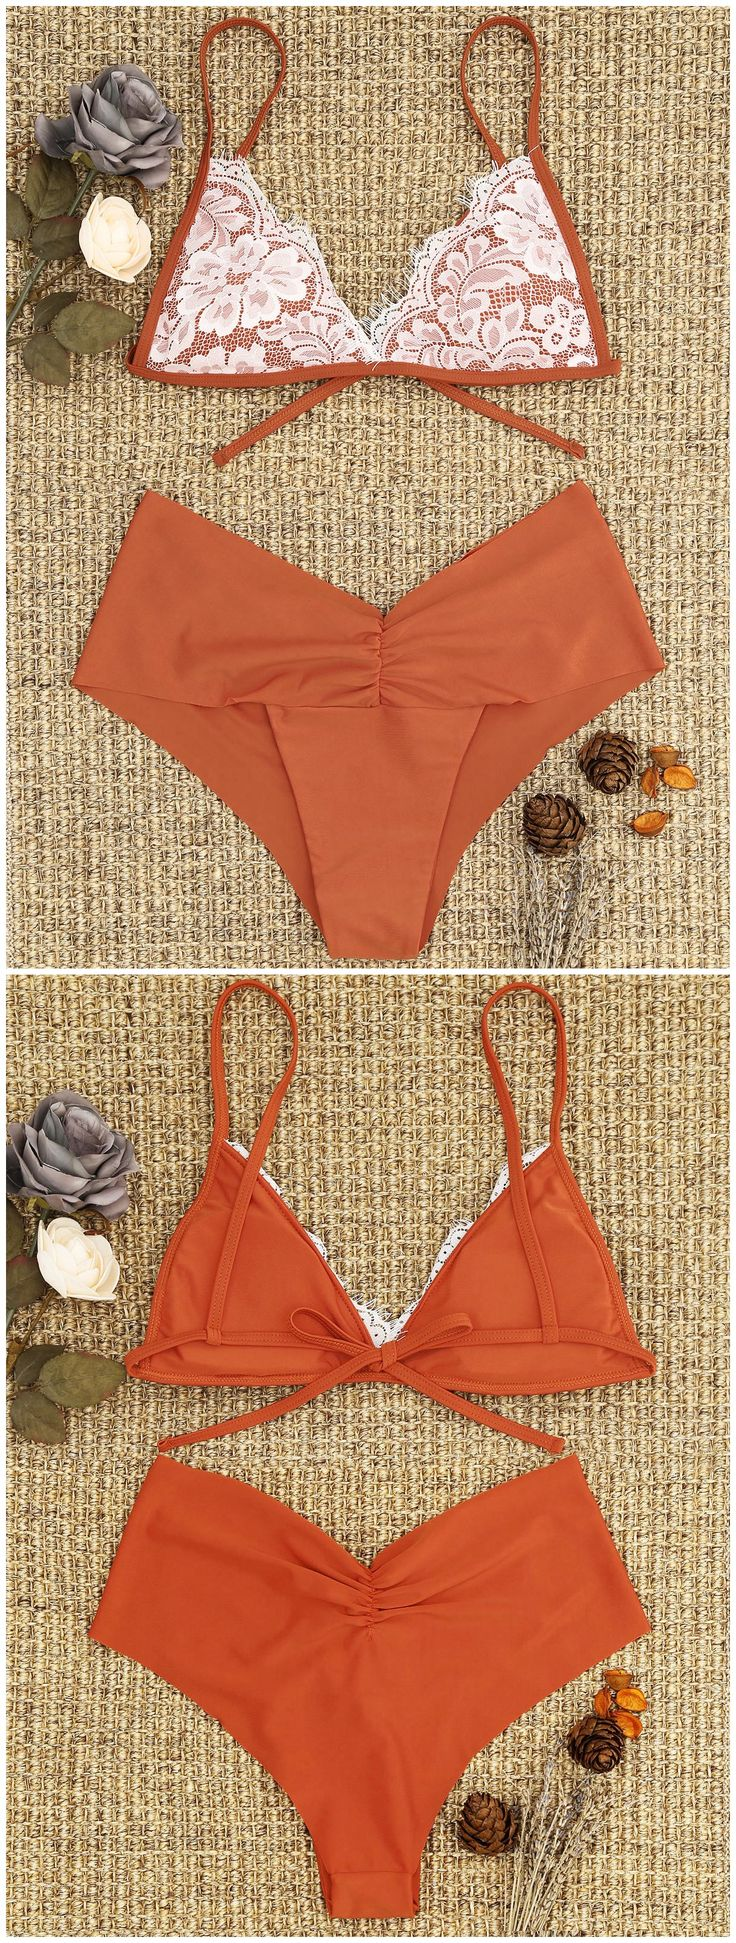 Up to 80% OFF! Lace Overlay Scrunch Bikini Set. #Zaful #Swimwear #Bikinis zaful,zaful outfits,zaful dresses,spring outfits,summer dresses,Valentine's Day,valentines day ideas,cute,casual,fashion,style,bathing suit,swimsuits,one pieces,swimwear,bikini set,bikini,one piece swimwear,beach outfit,swimwear cover ups,high waisted swimsuit,tankini,high cut one piece swimsuit,high waisted swimsuit,swimwear modest,swimsuit modest,cover ups,swimsuit cover up @zaful Extra 10% OFF Code:ZF2017